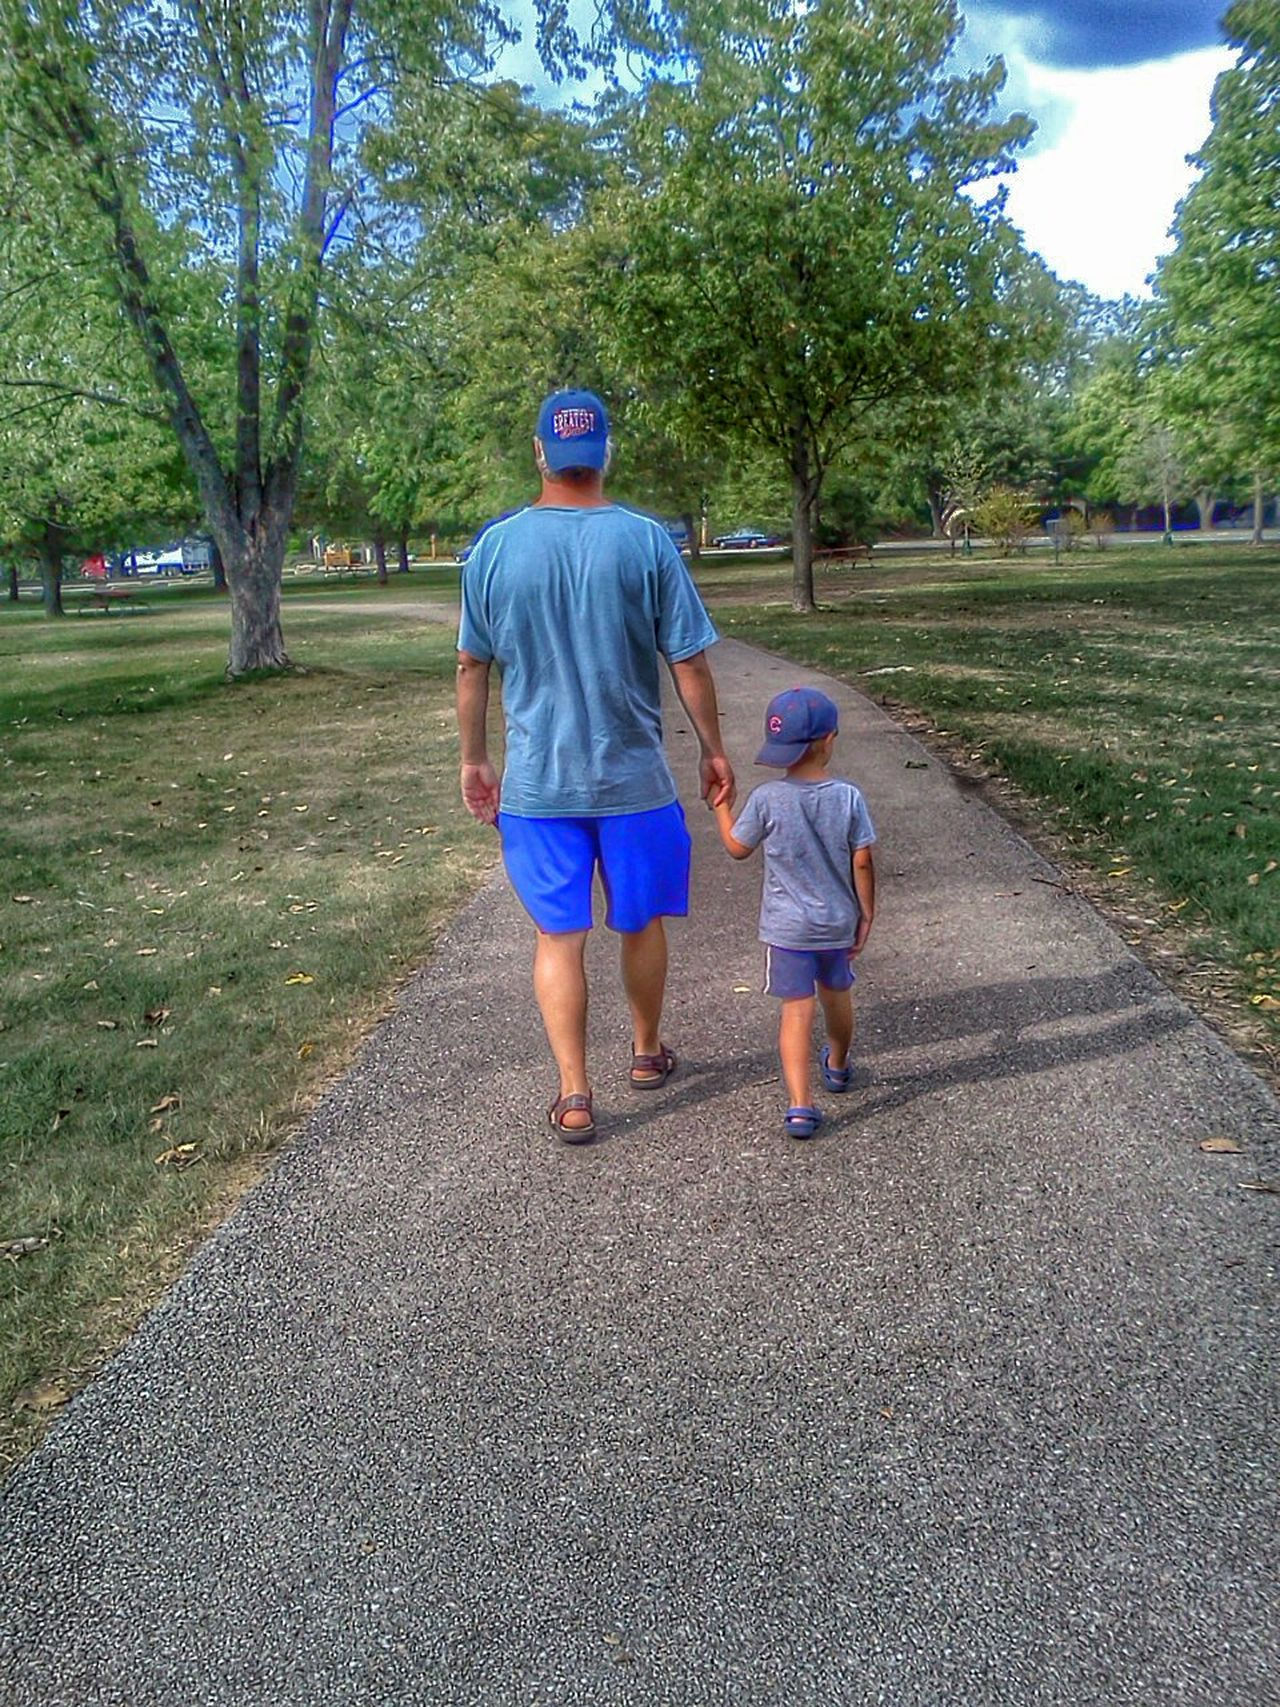 Father and son walkingvin a park Children Photography My Child Family Walks My Kid Color Photography Childhood Memories Color Kids Portrait People Editorial  Childhood Outdoors Walking Hand In Hand Father & Son Dad And Son Father And Son ChildrenSummer Colorful Boy Fatherhood Moments Fatherhood  Park Colors